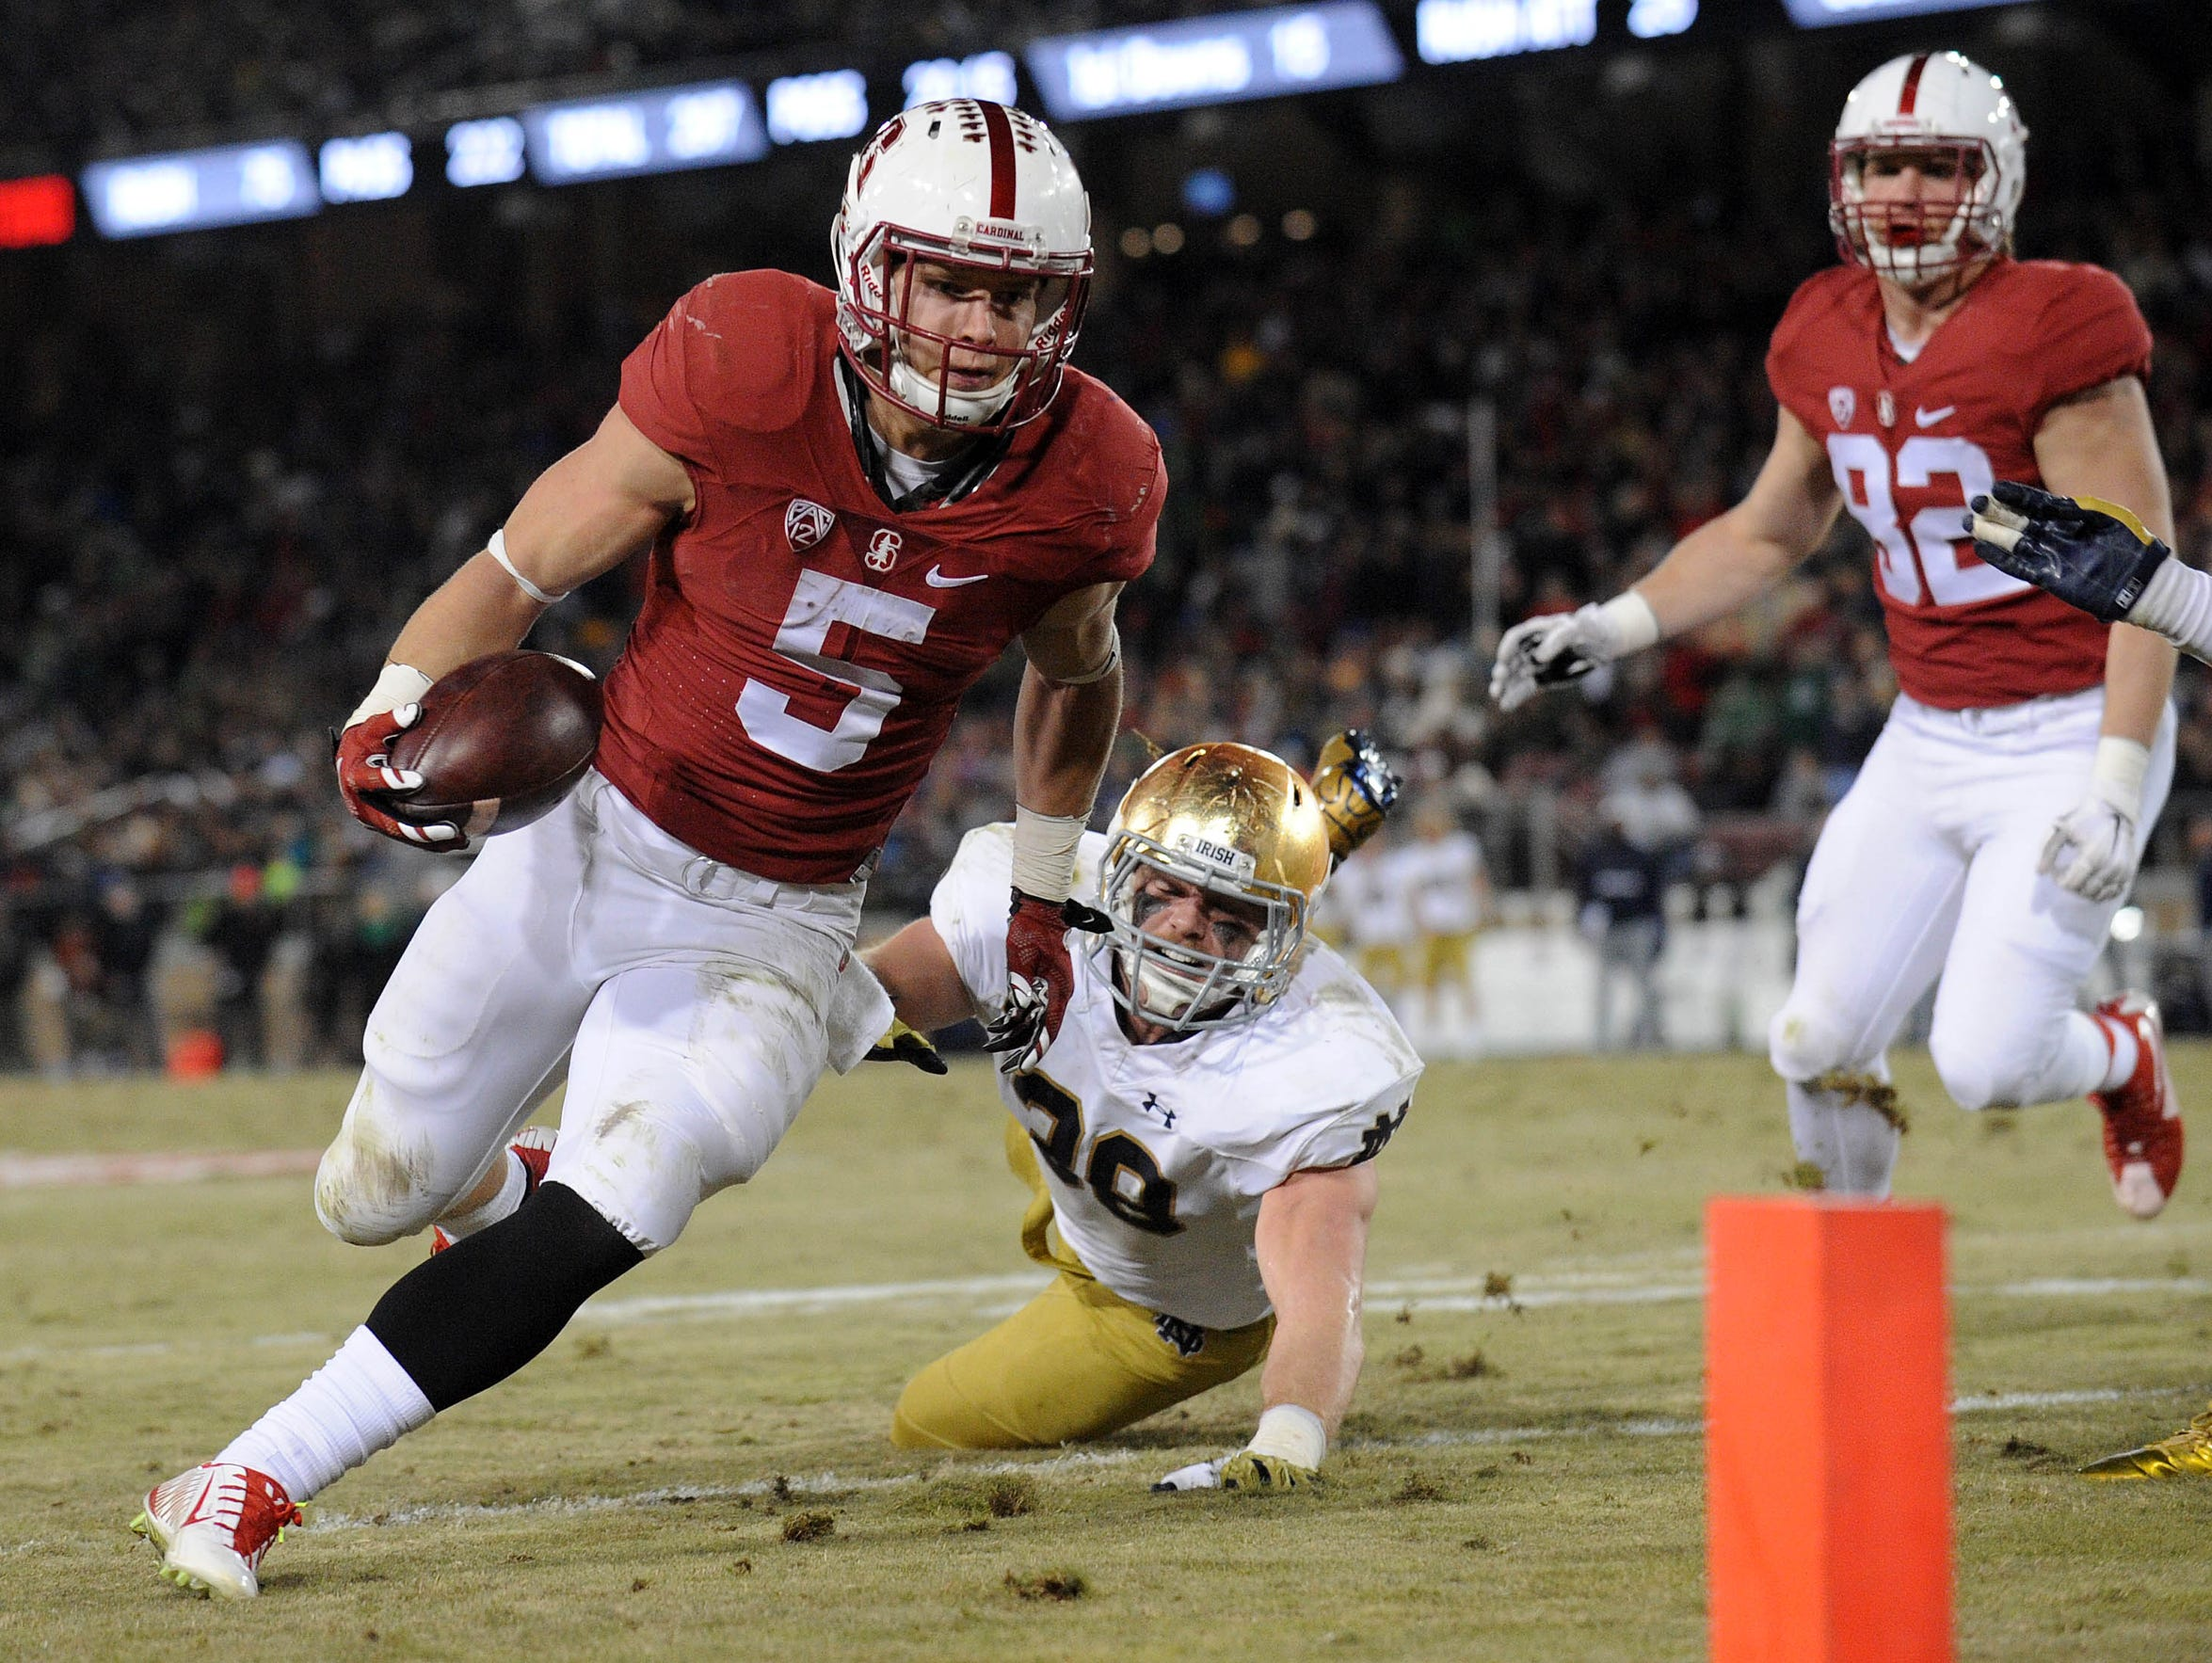 Whether running inside or outside, McCaffrey has rare